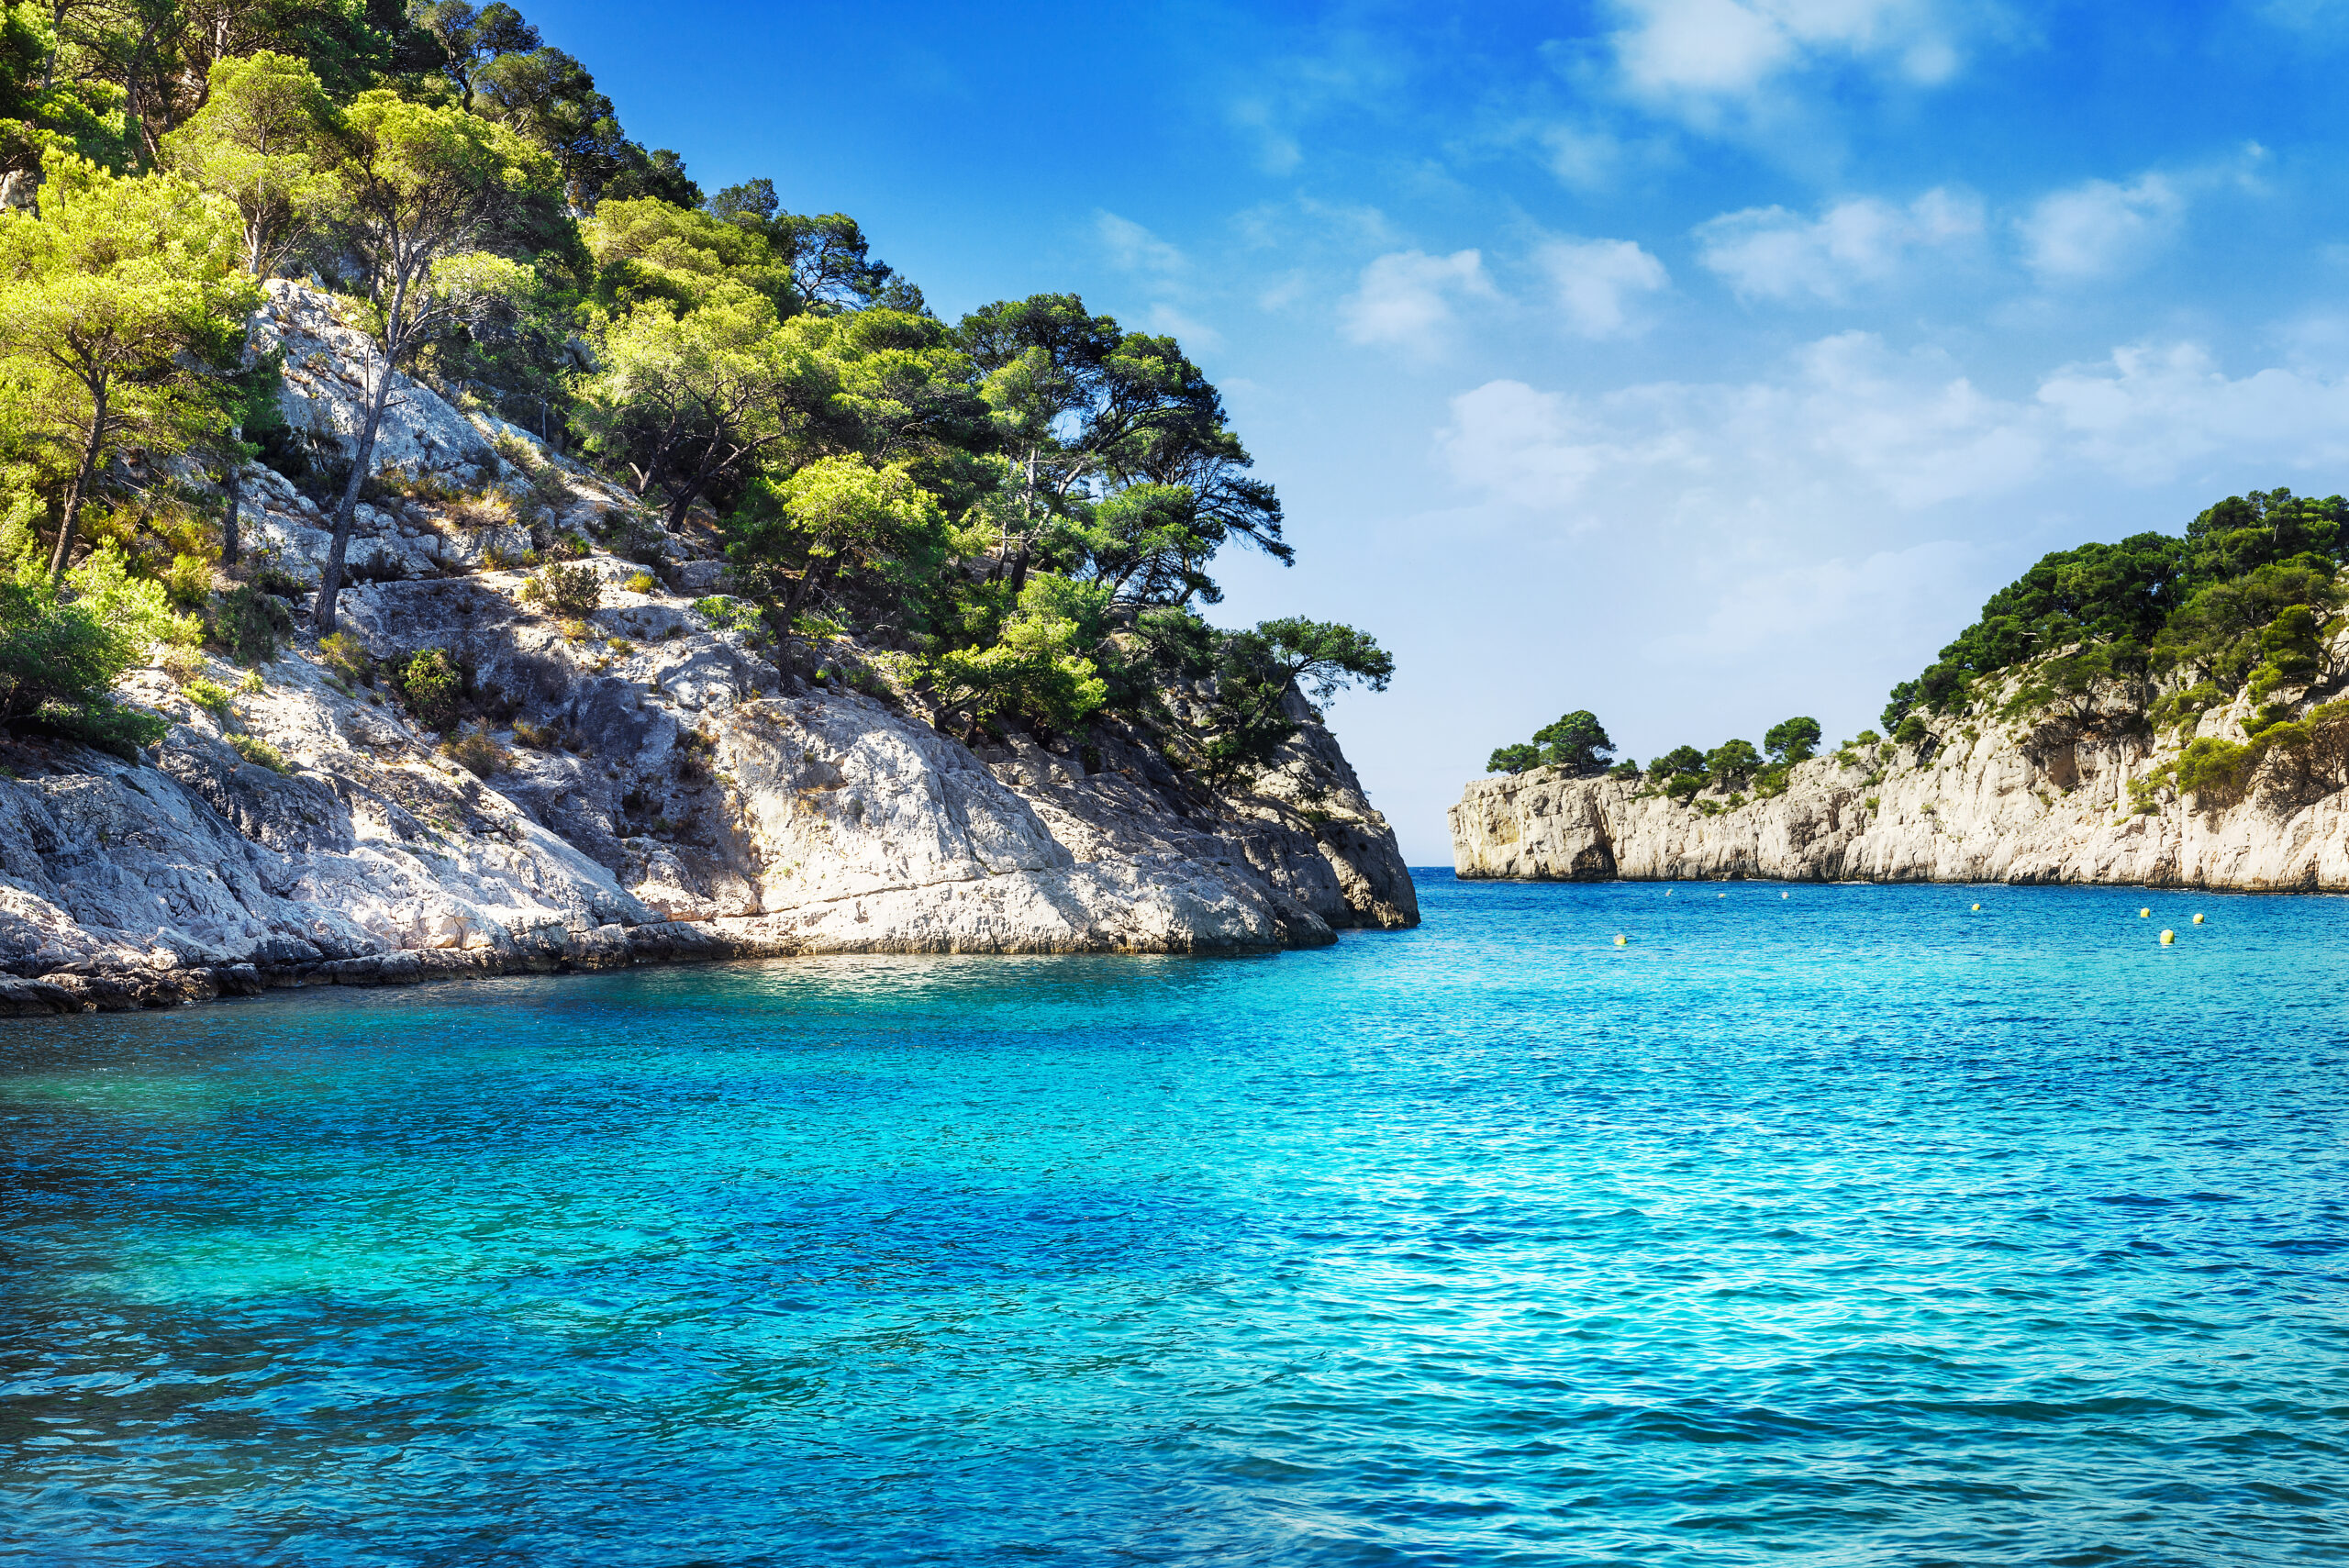 Calanque in Cassis with turquoise waters and cliffs filled with green trees and plants.